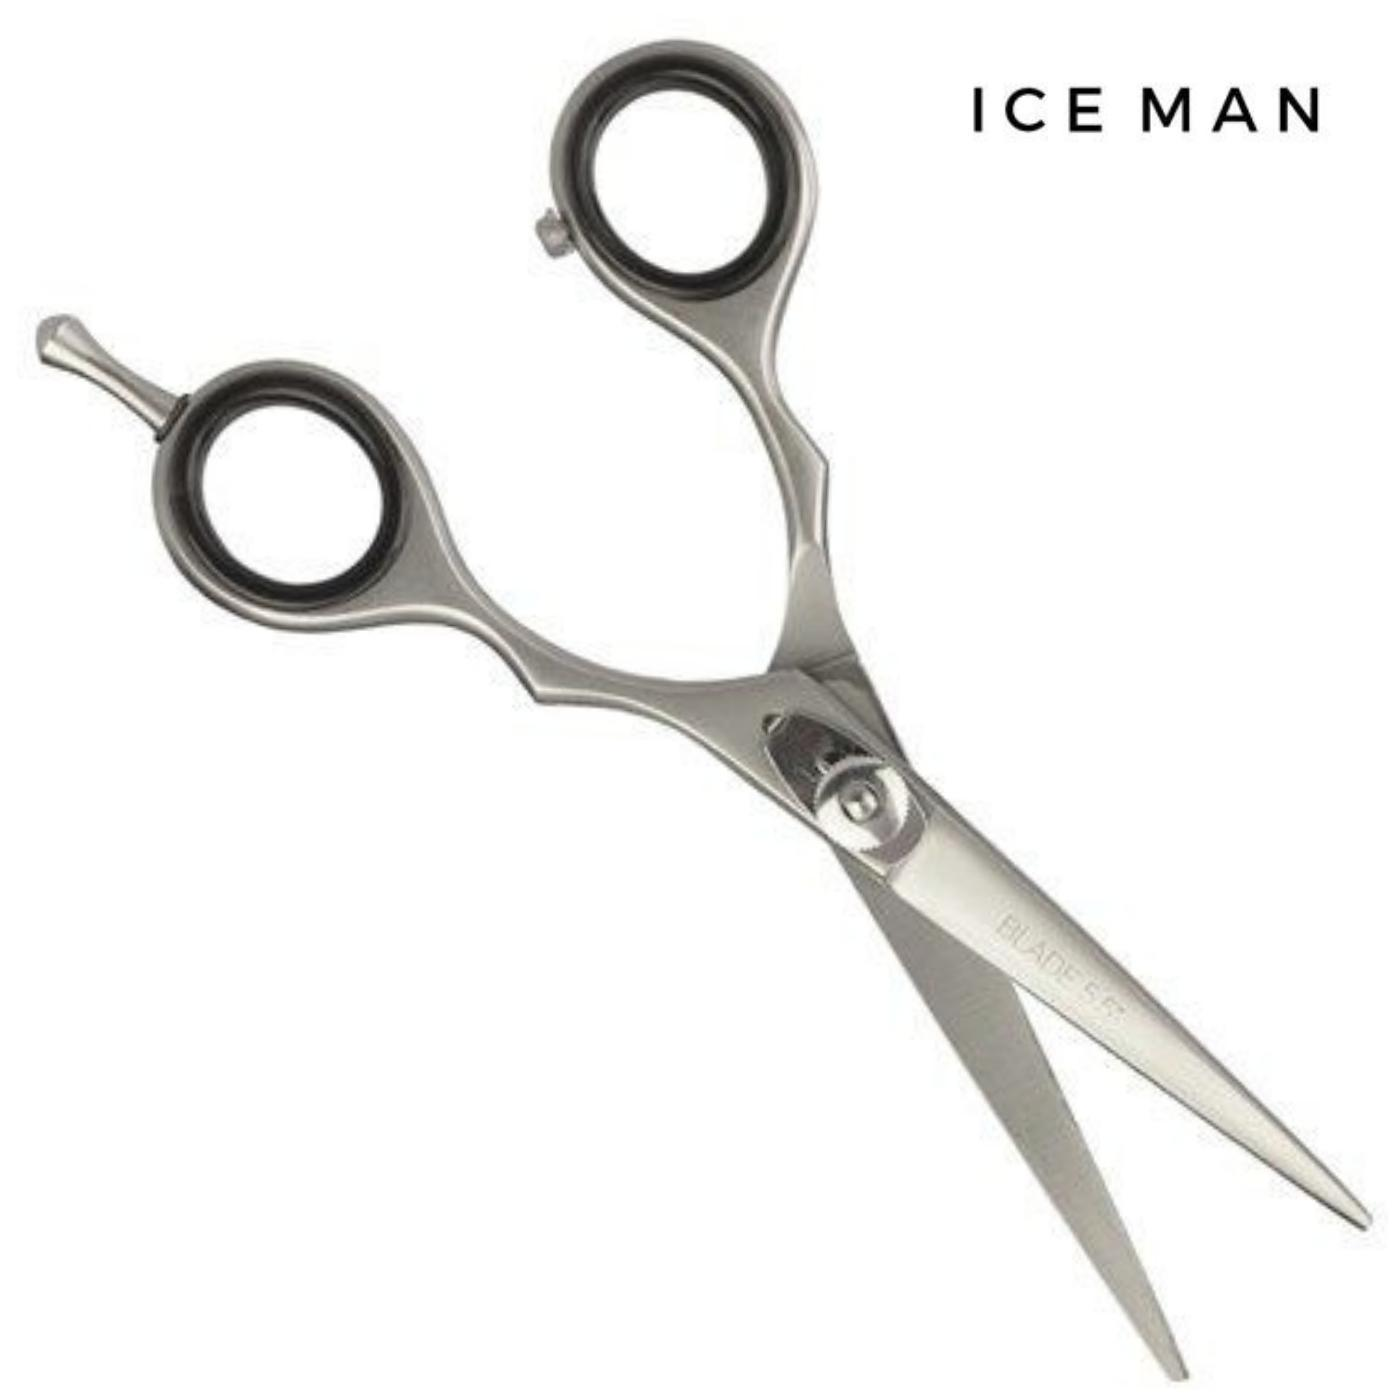 "Iceman 5.5"" Satin Hairdressing Scissors - Japan Scissors"